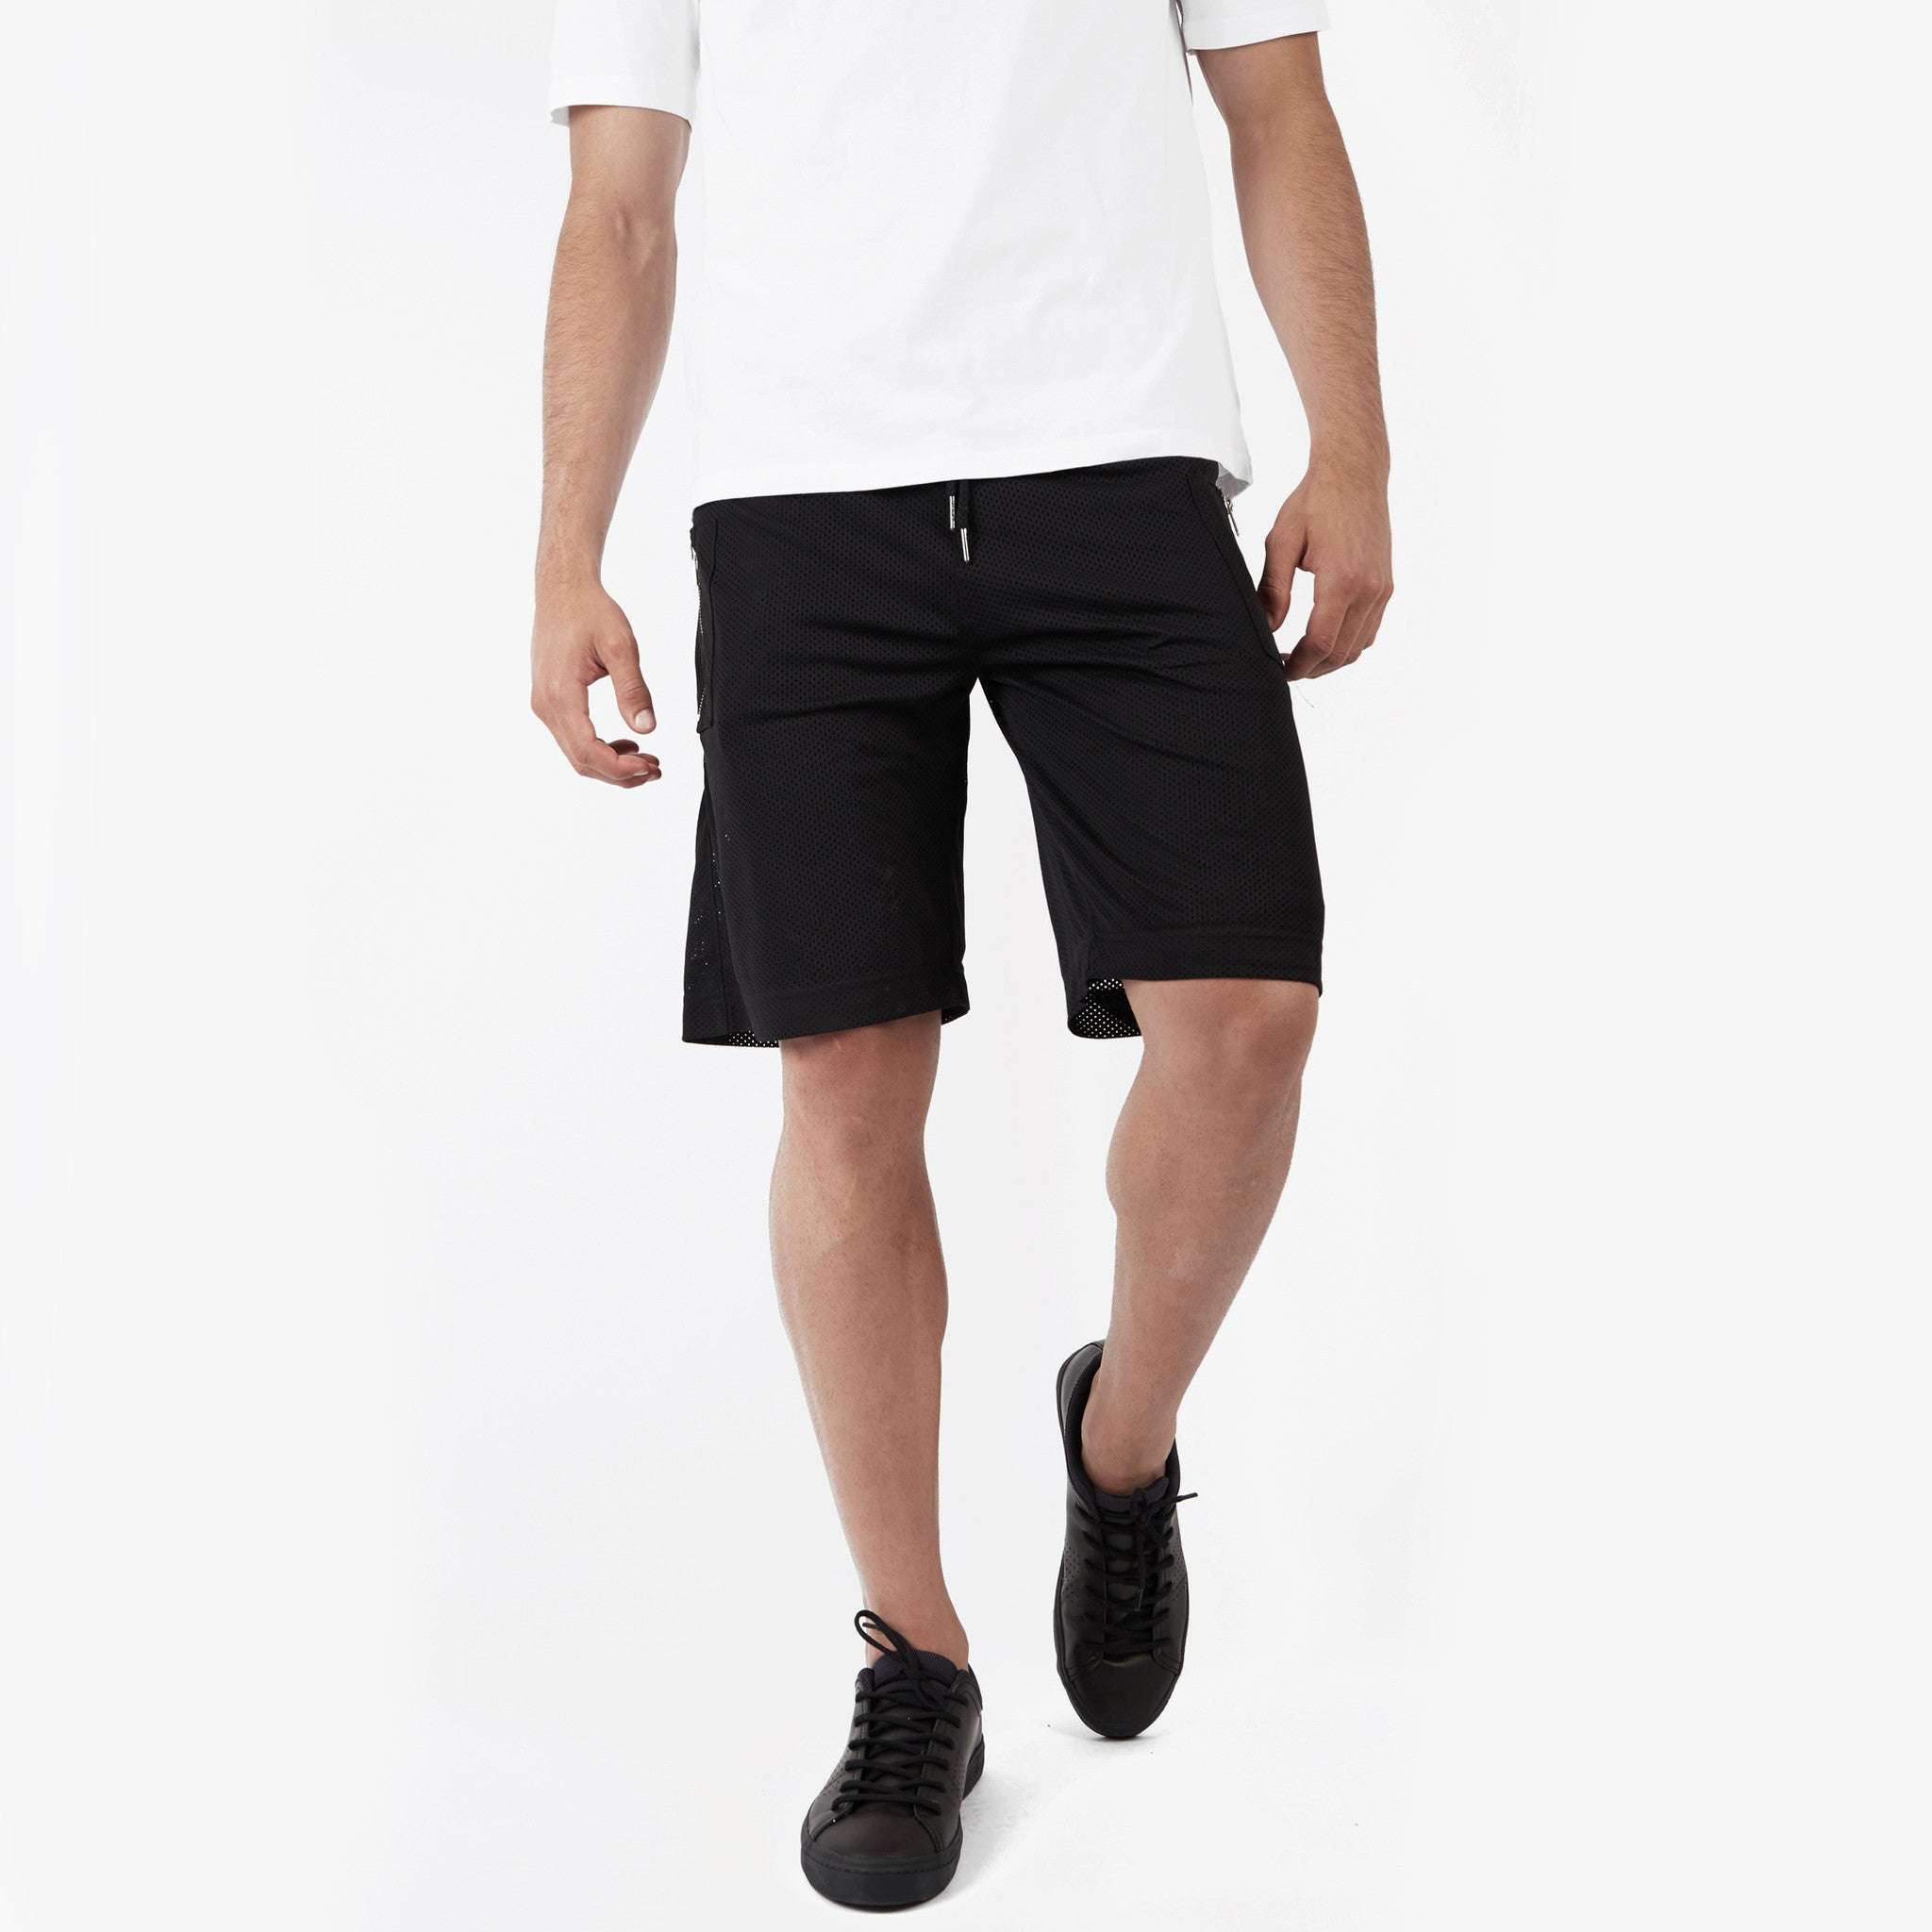 SR283 Utility Airtex Shorts - Black - underated london - underatedco - 6